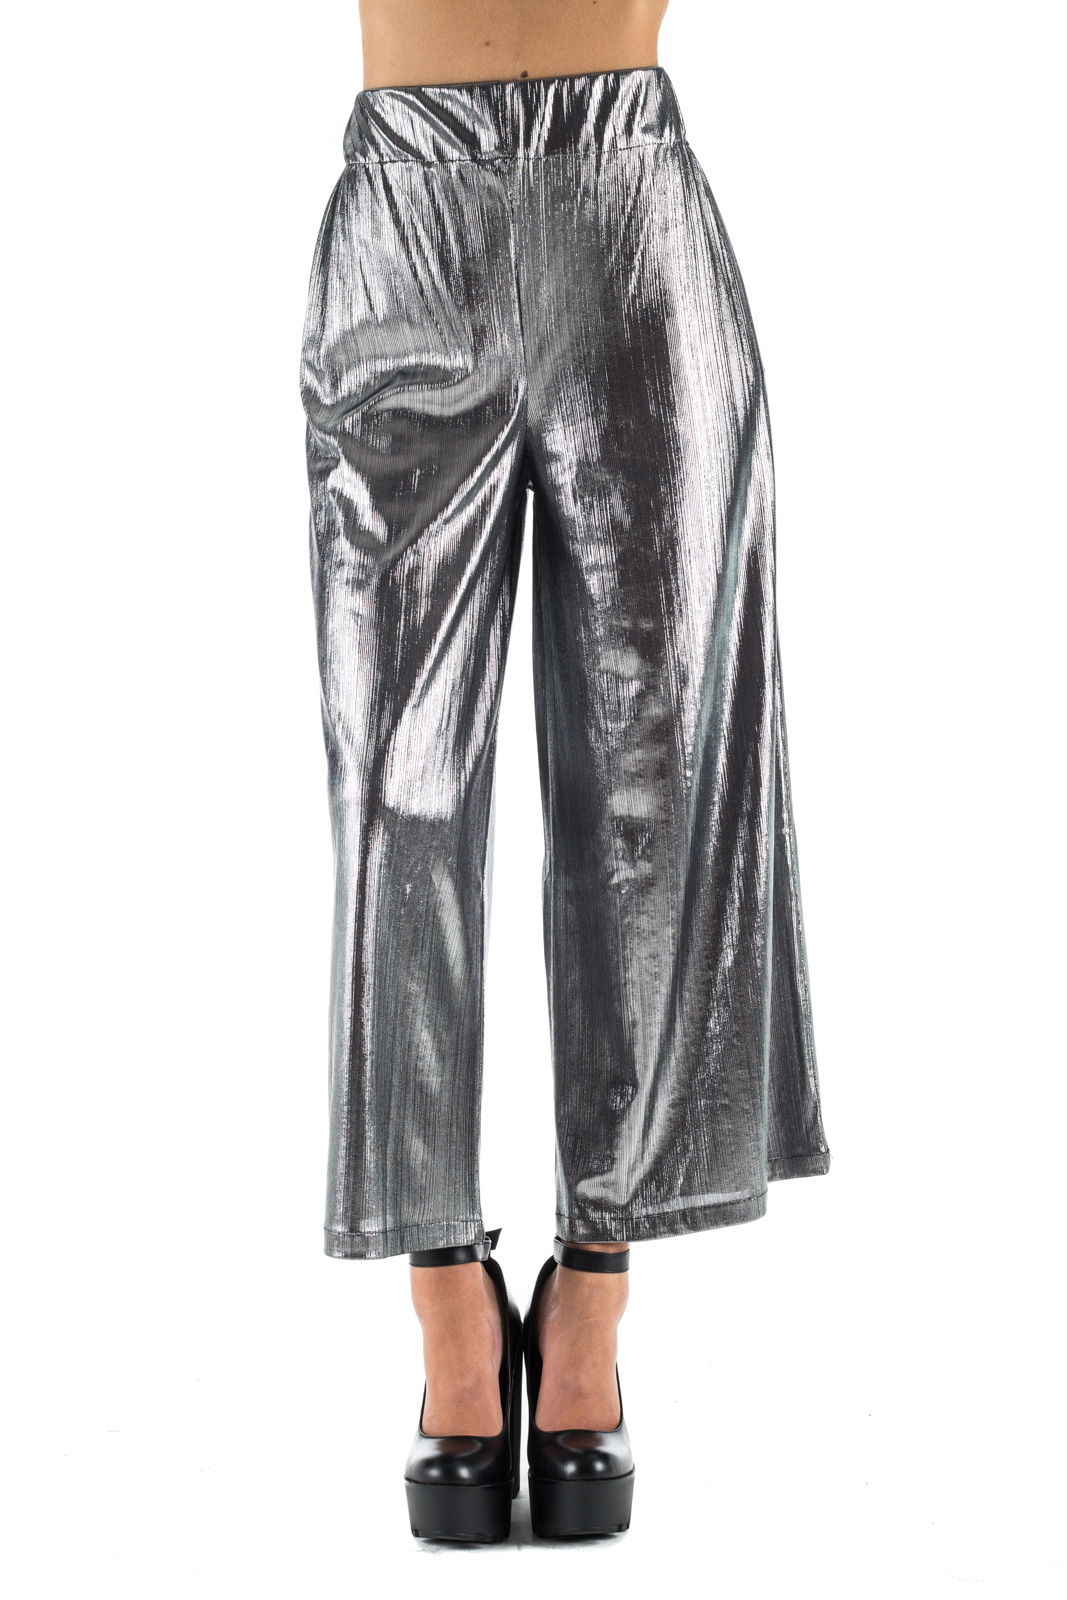 BSB - Silver Palace Trousers